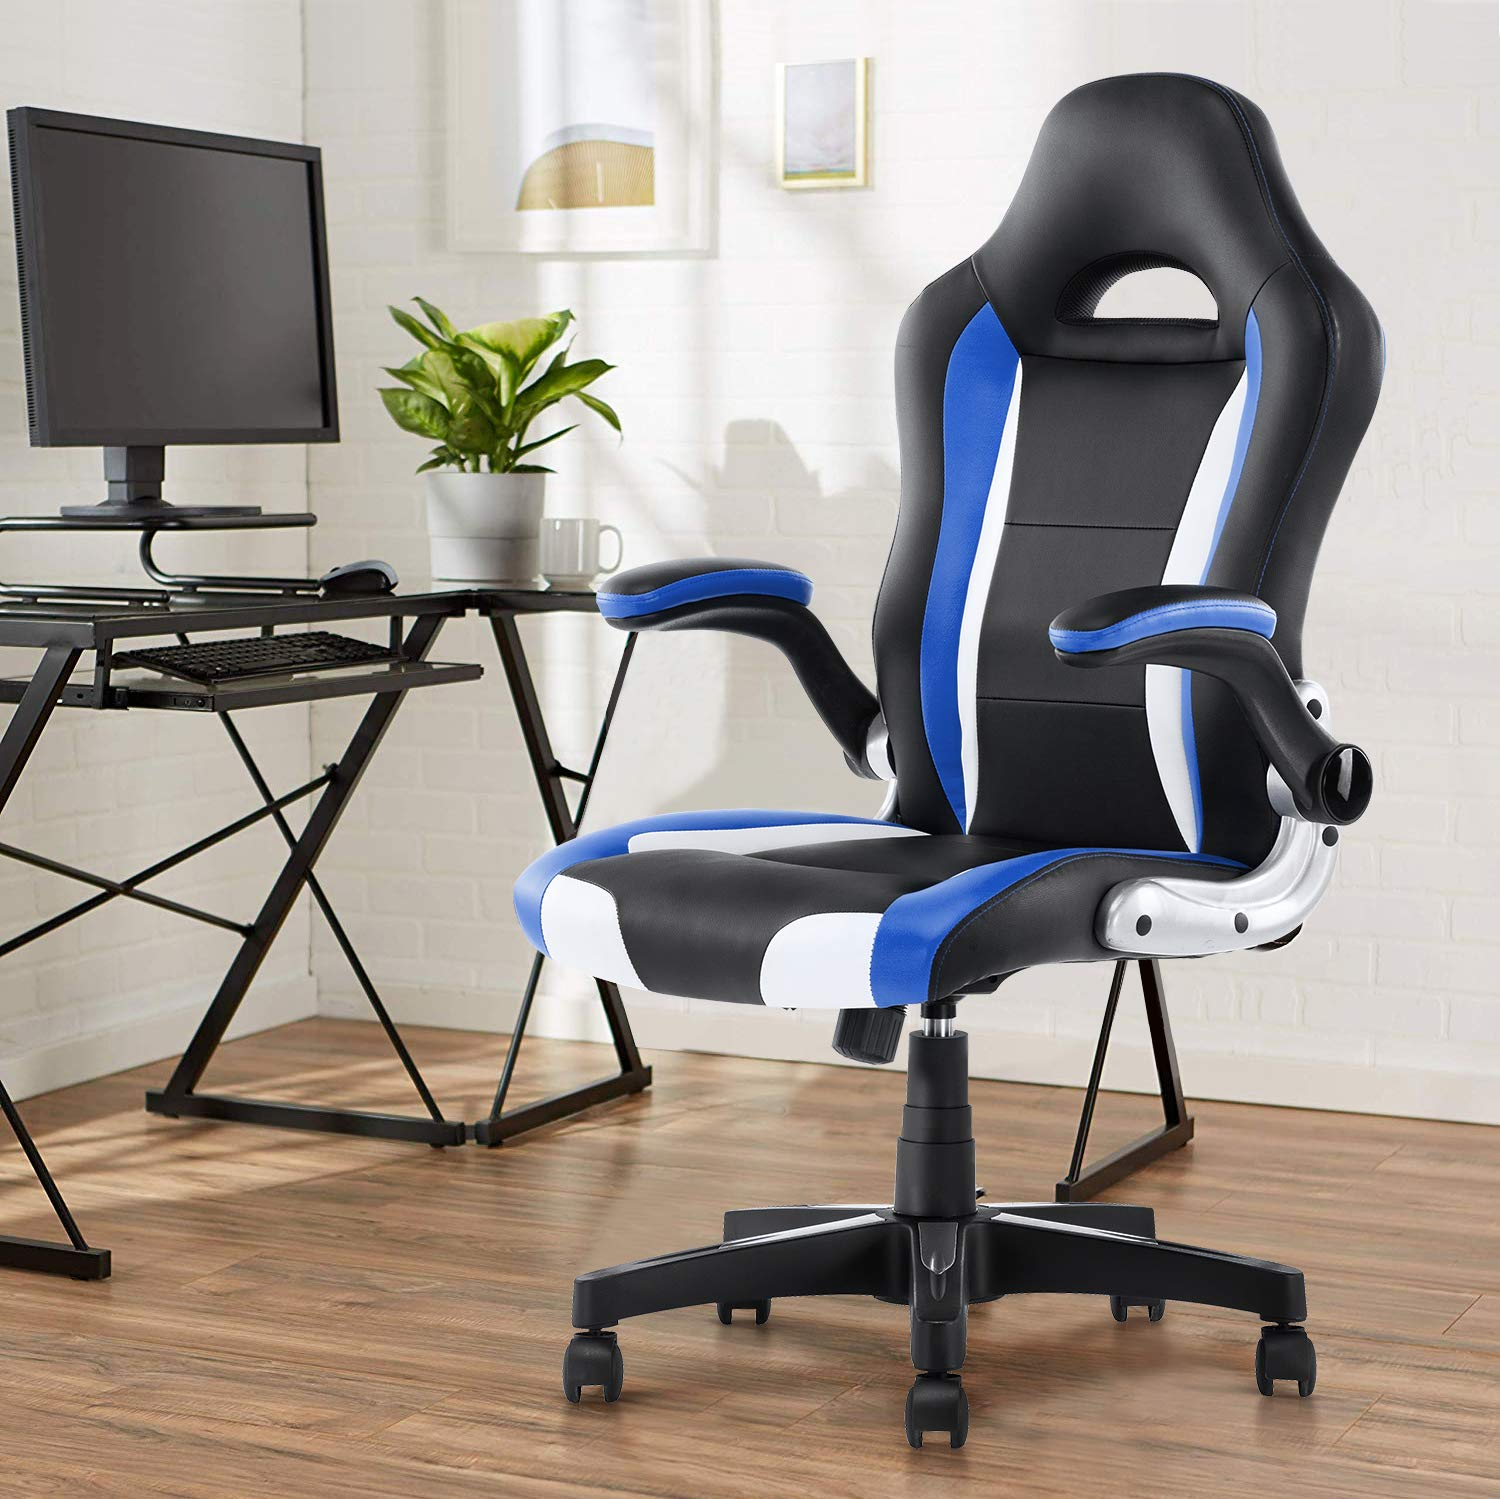 YAMASORO Ergonomic Executive Office Chair High Back White Leather Computer Chair Big Tall Office Desk Chair with arms and Wheels Swivel for Heavy People